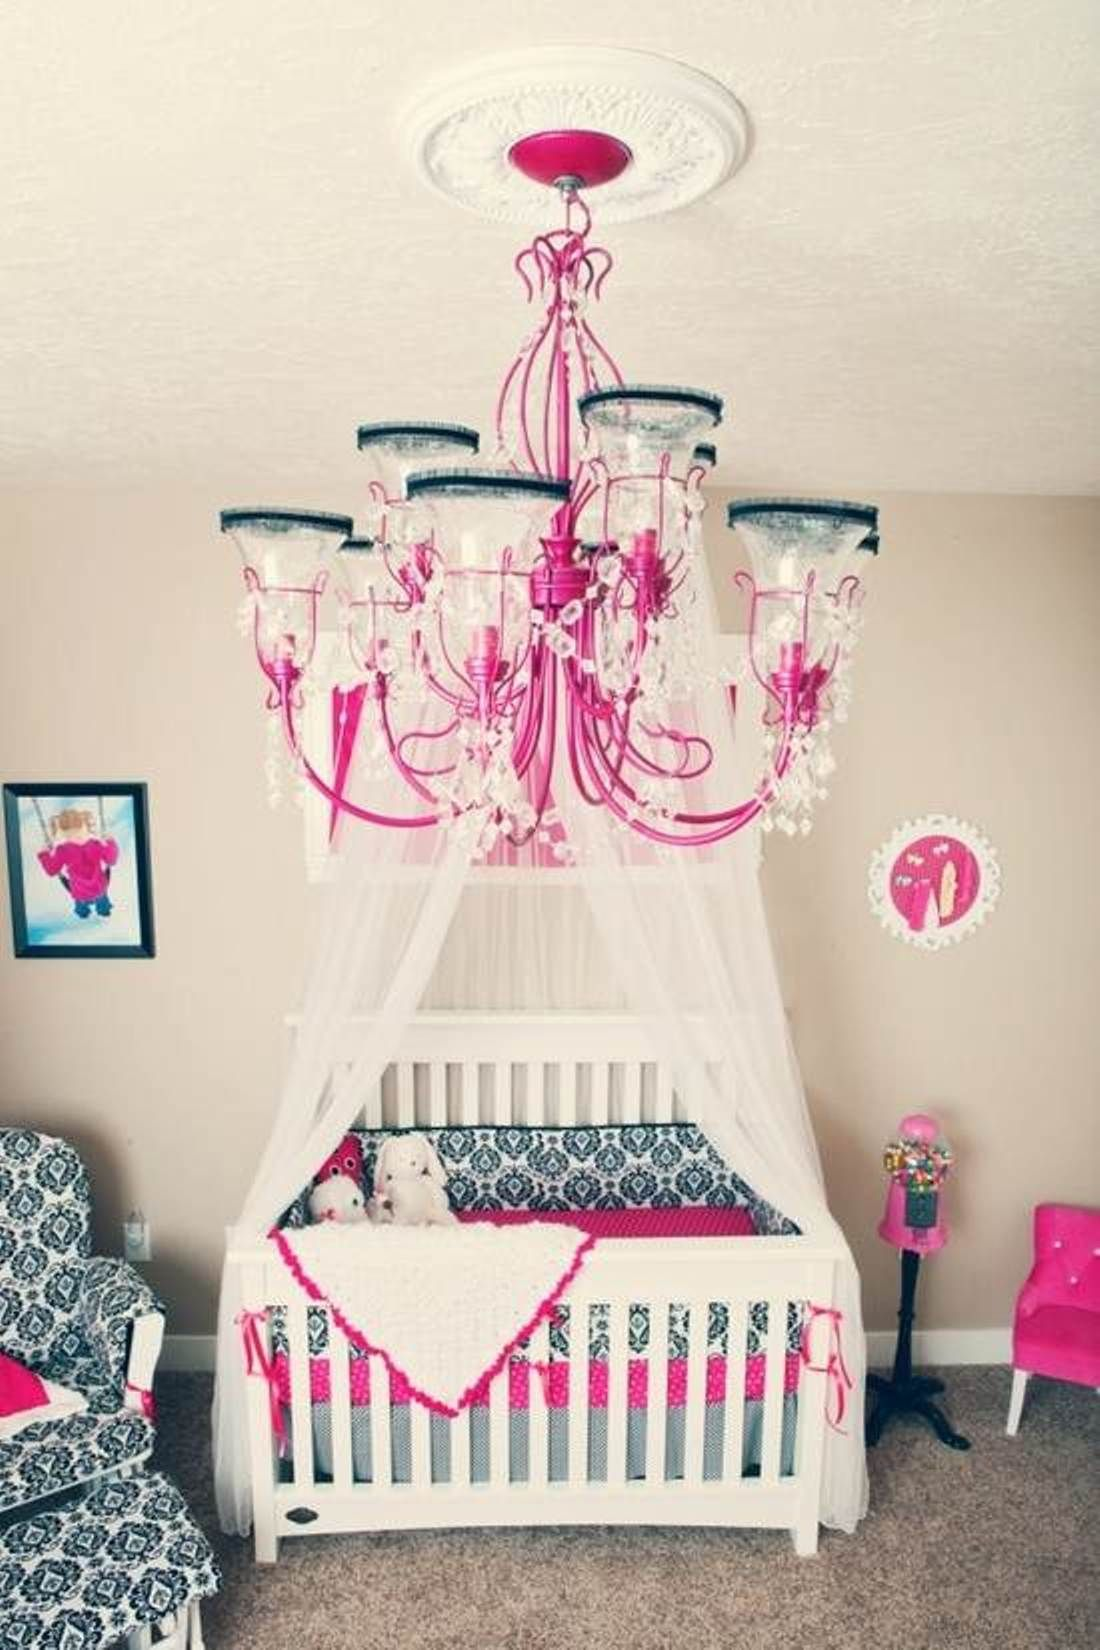 Cute baby girl bedroom ideas better home and garden dos cute baby girl bedroom ideas better home and garden arubaitofo Gallery